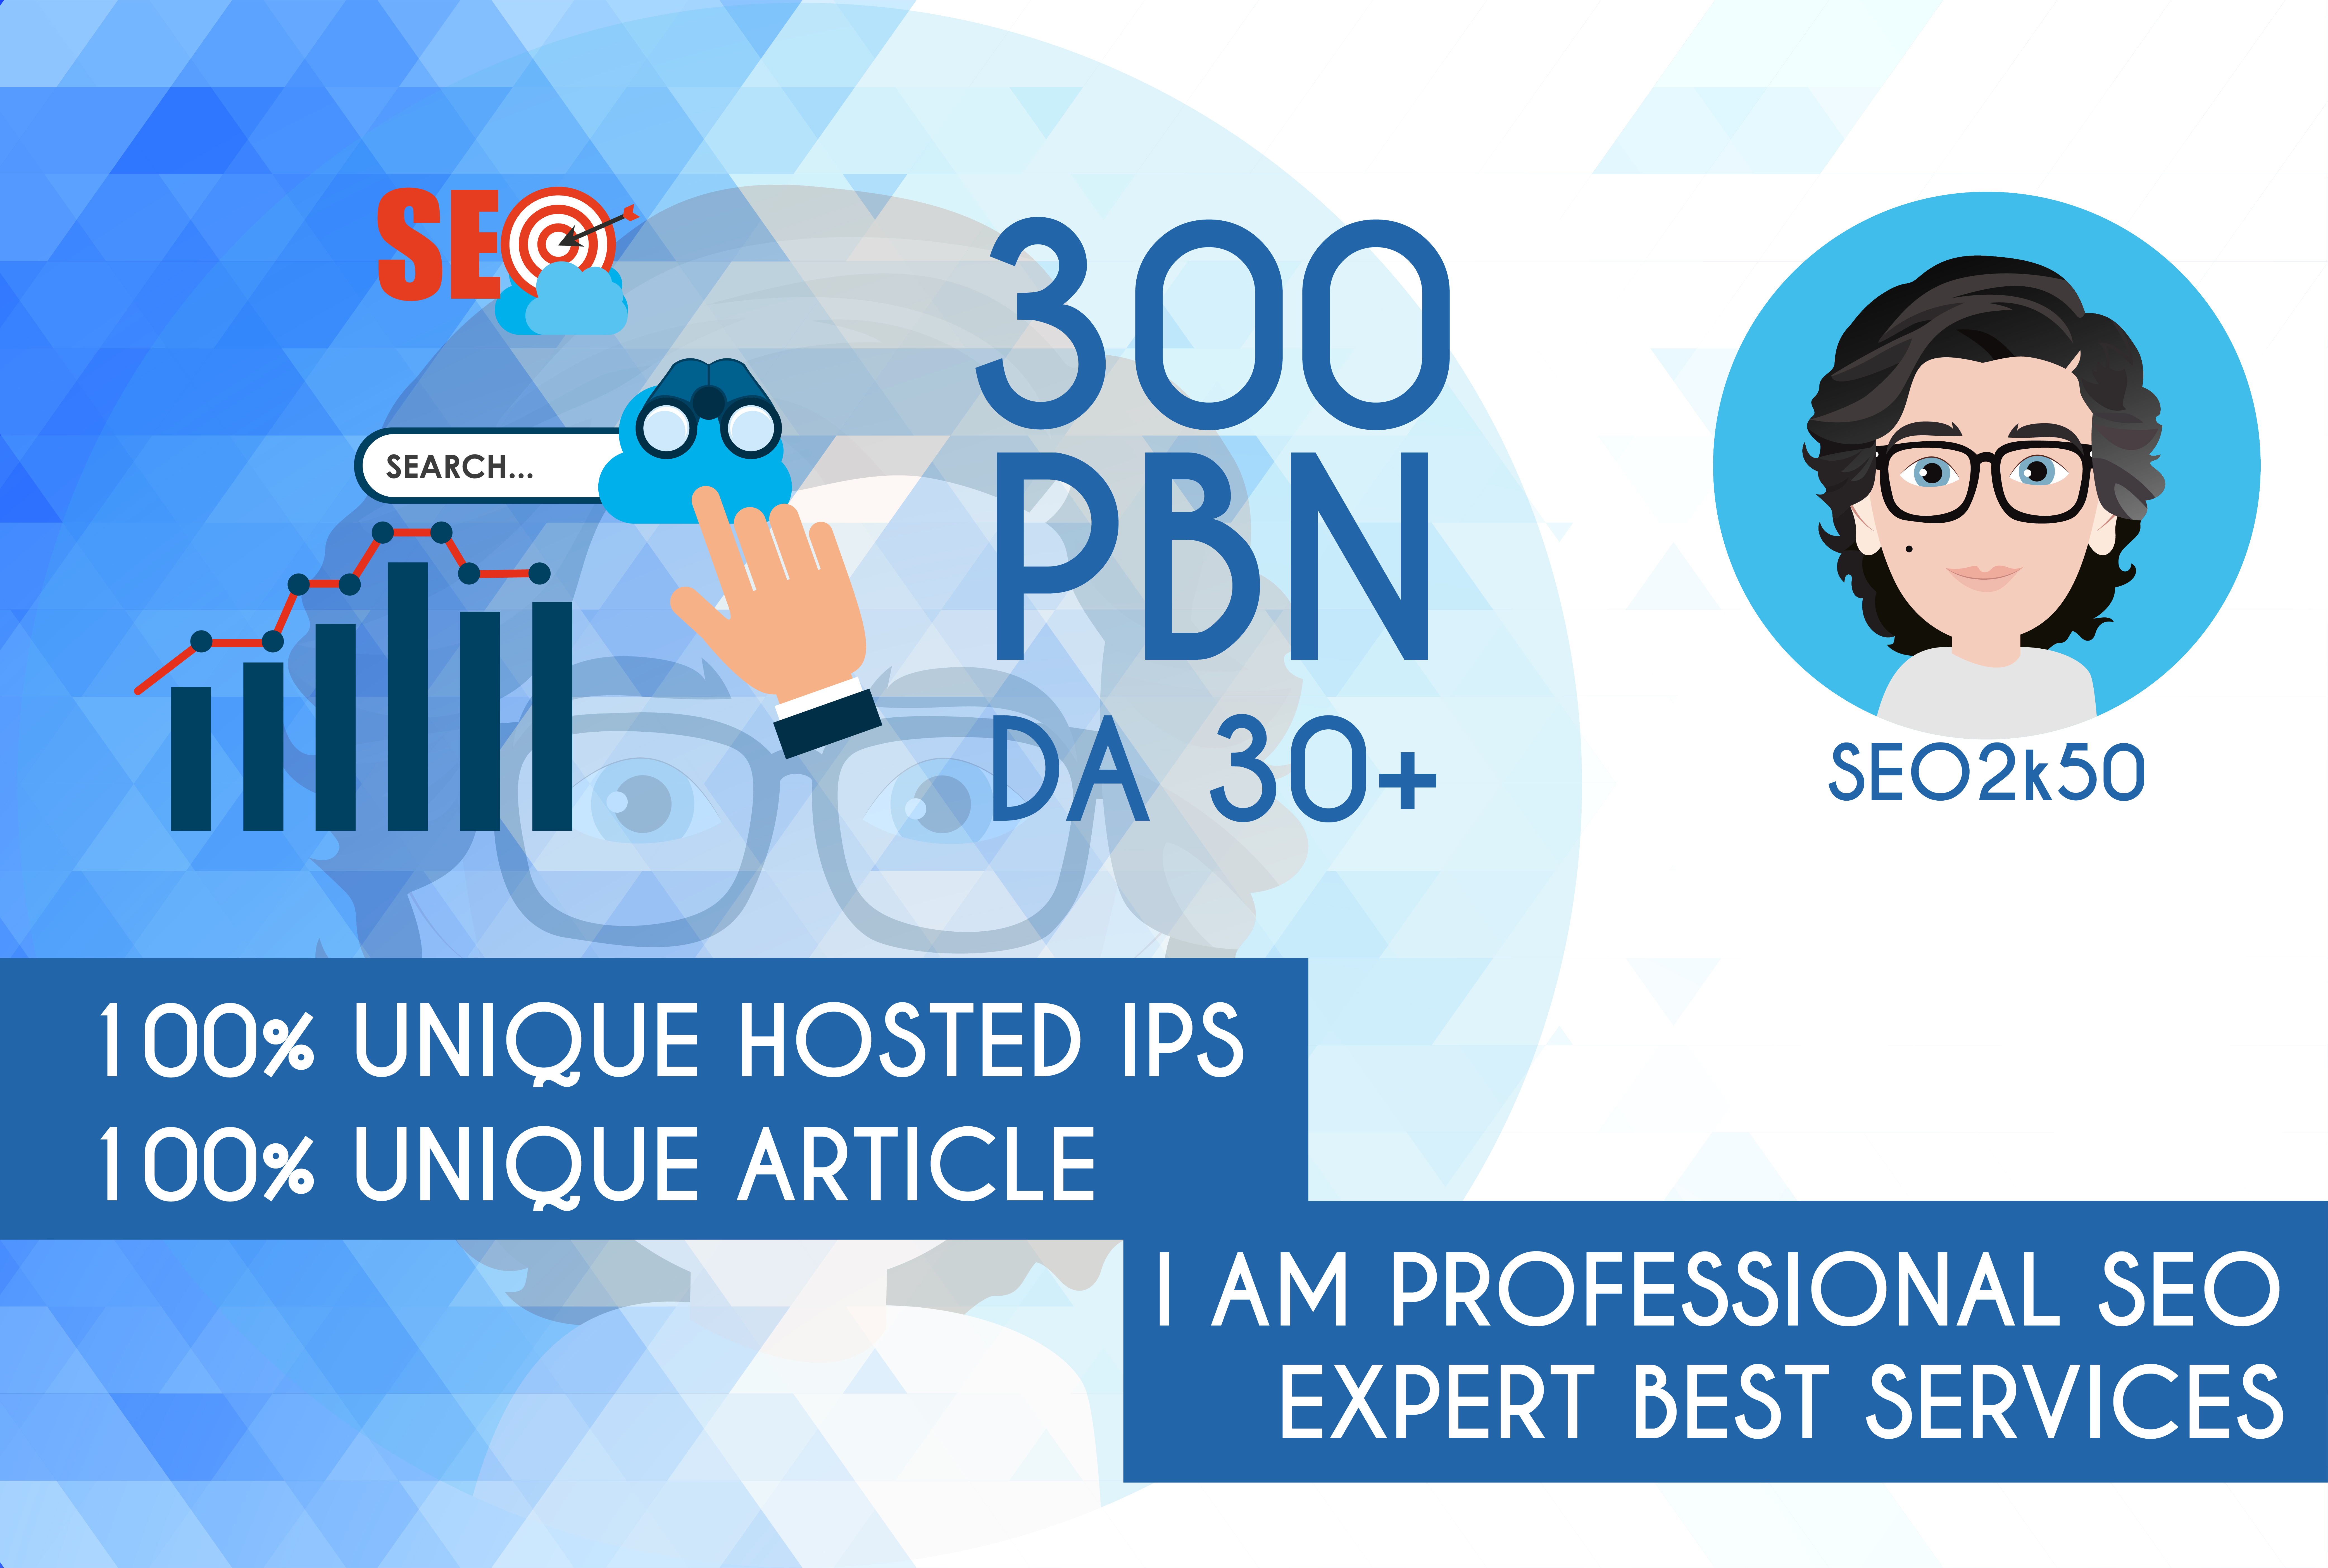 Create PBN 300 Permanent DA 30+ Homepage high quality dofollow Backlink